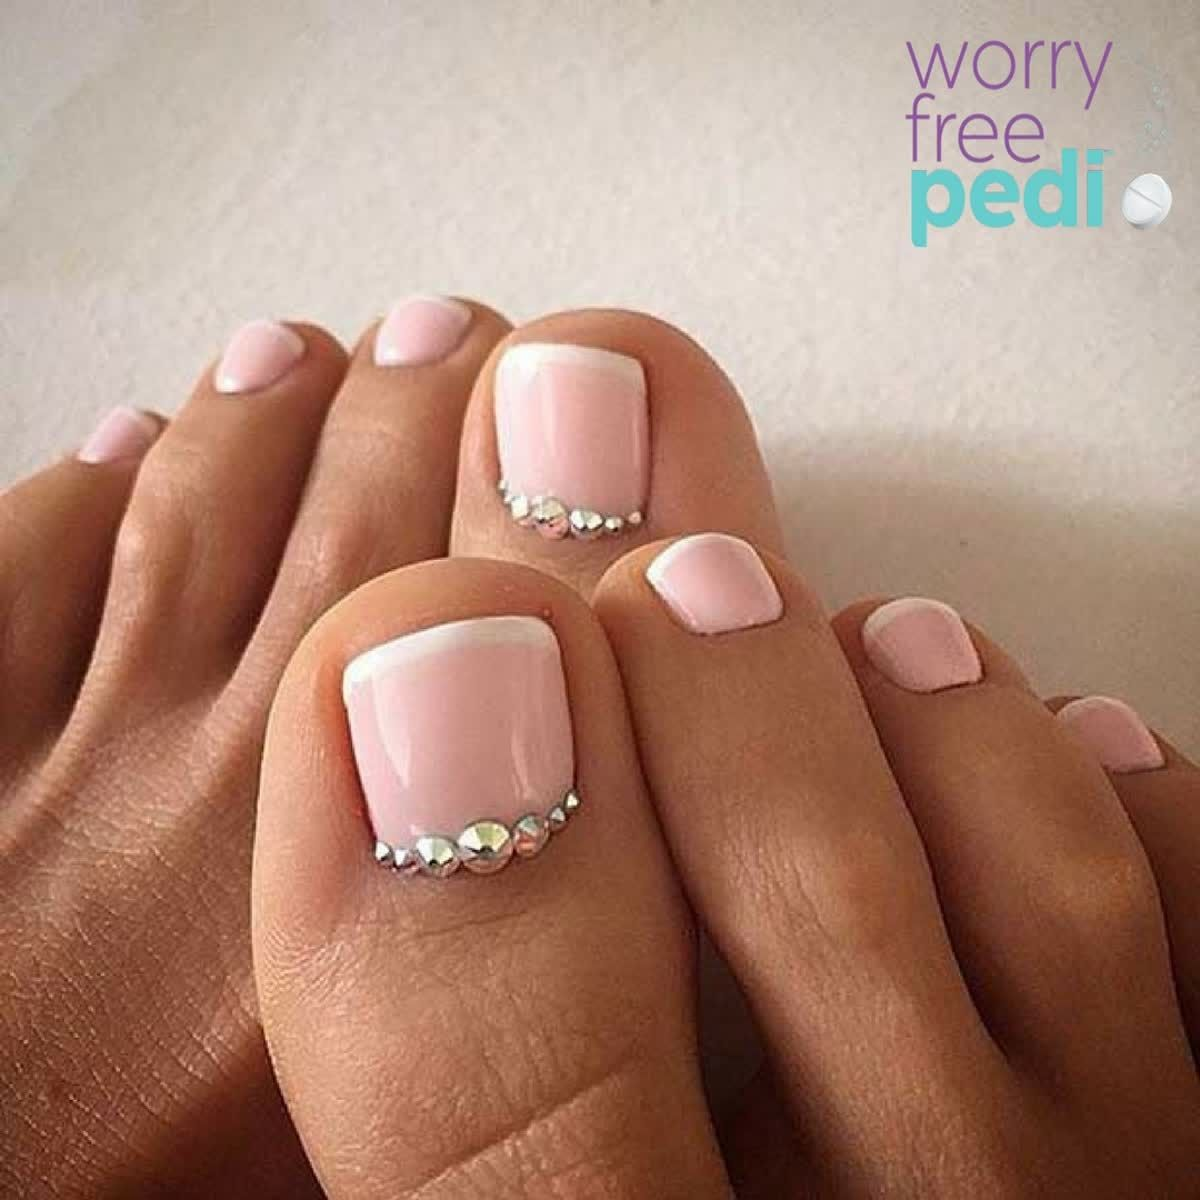 How well do you trust the cleanliness of your nail salon? Enough to ...